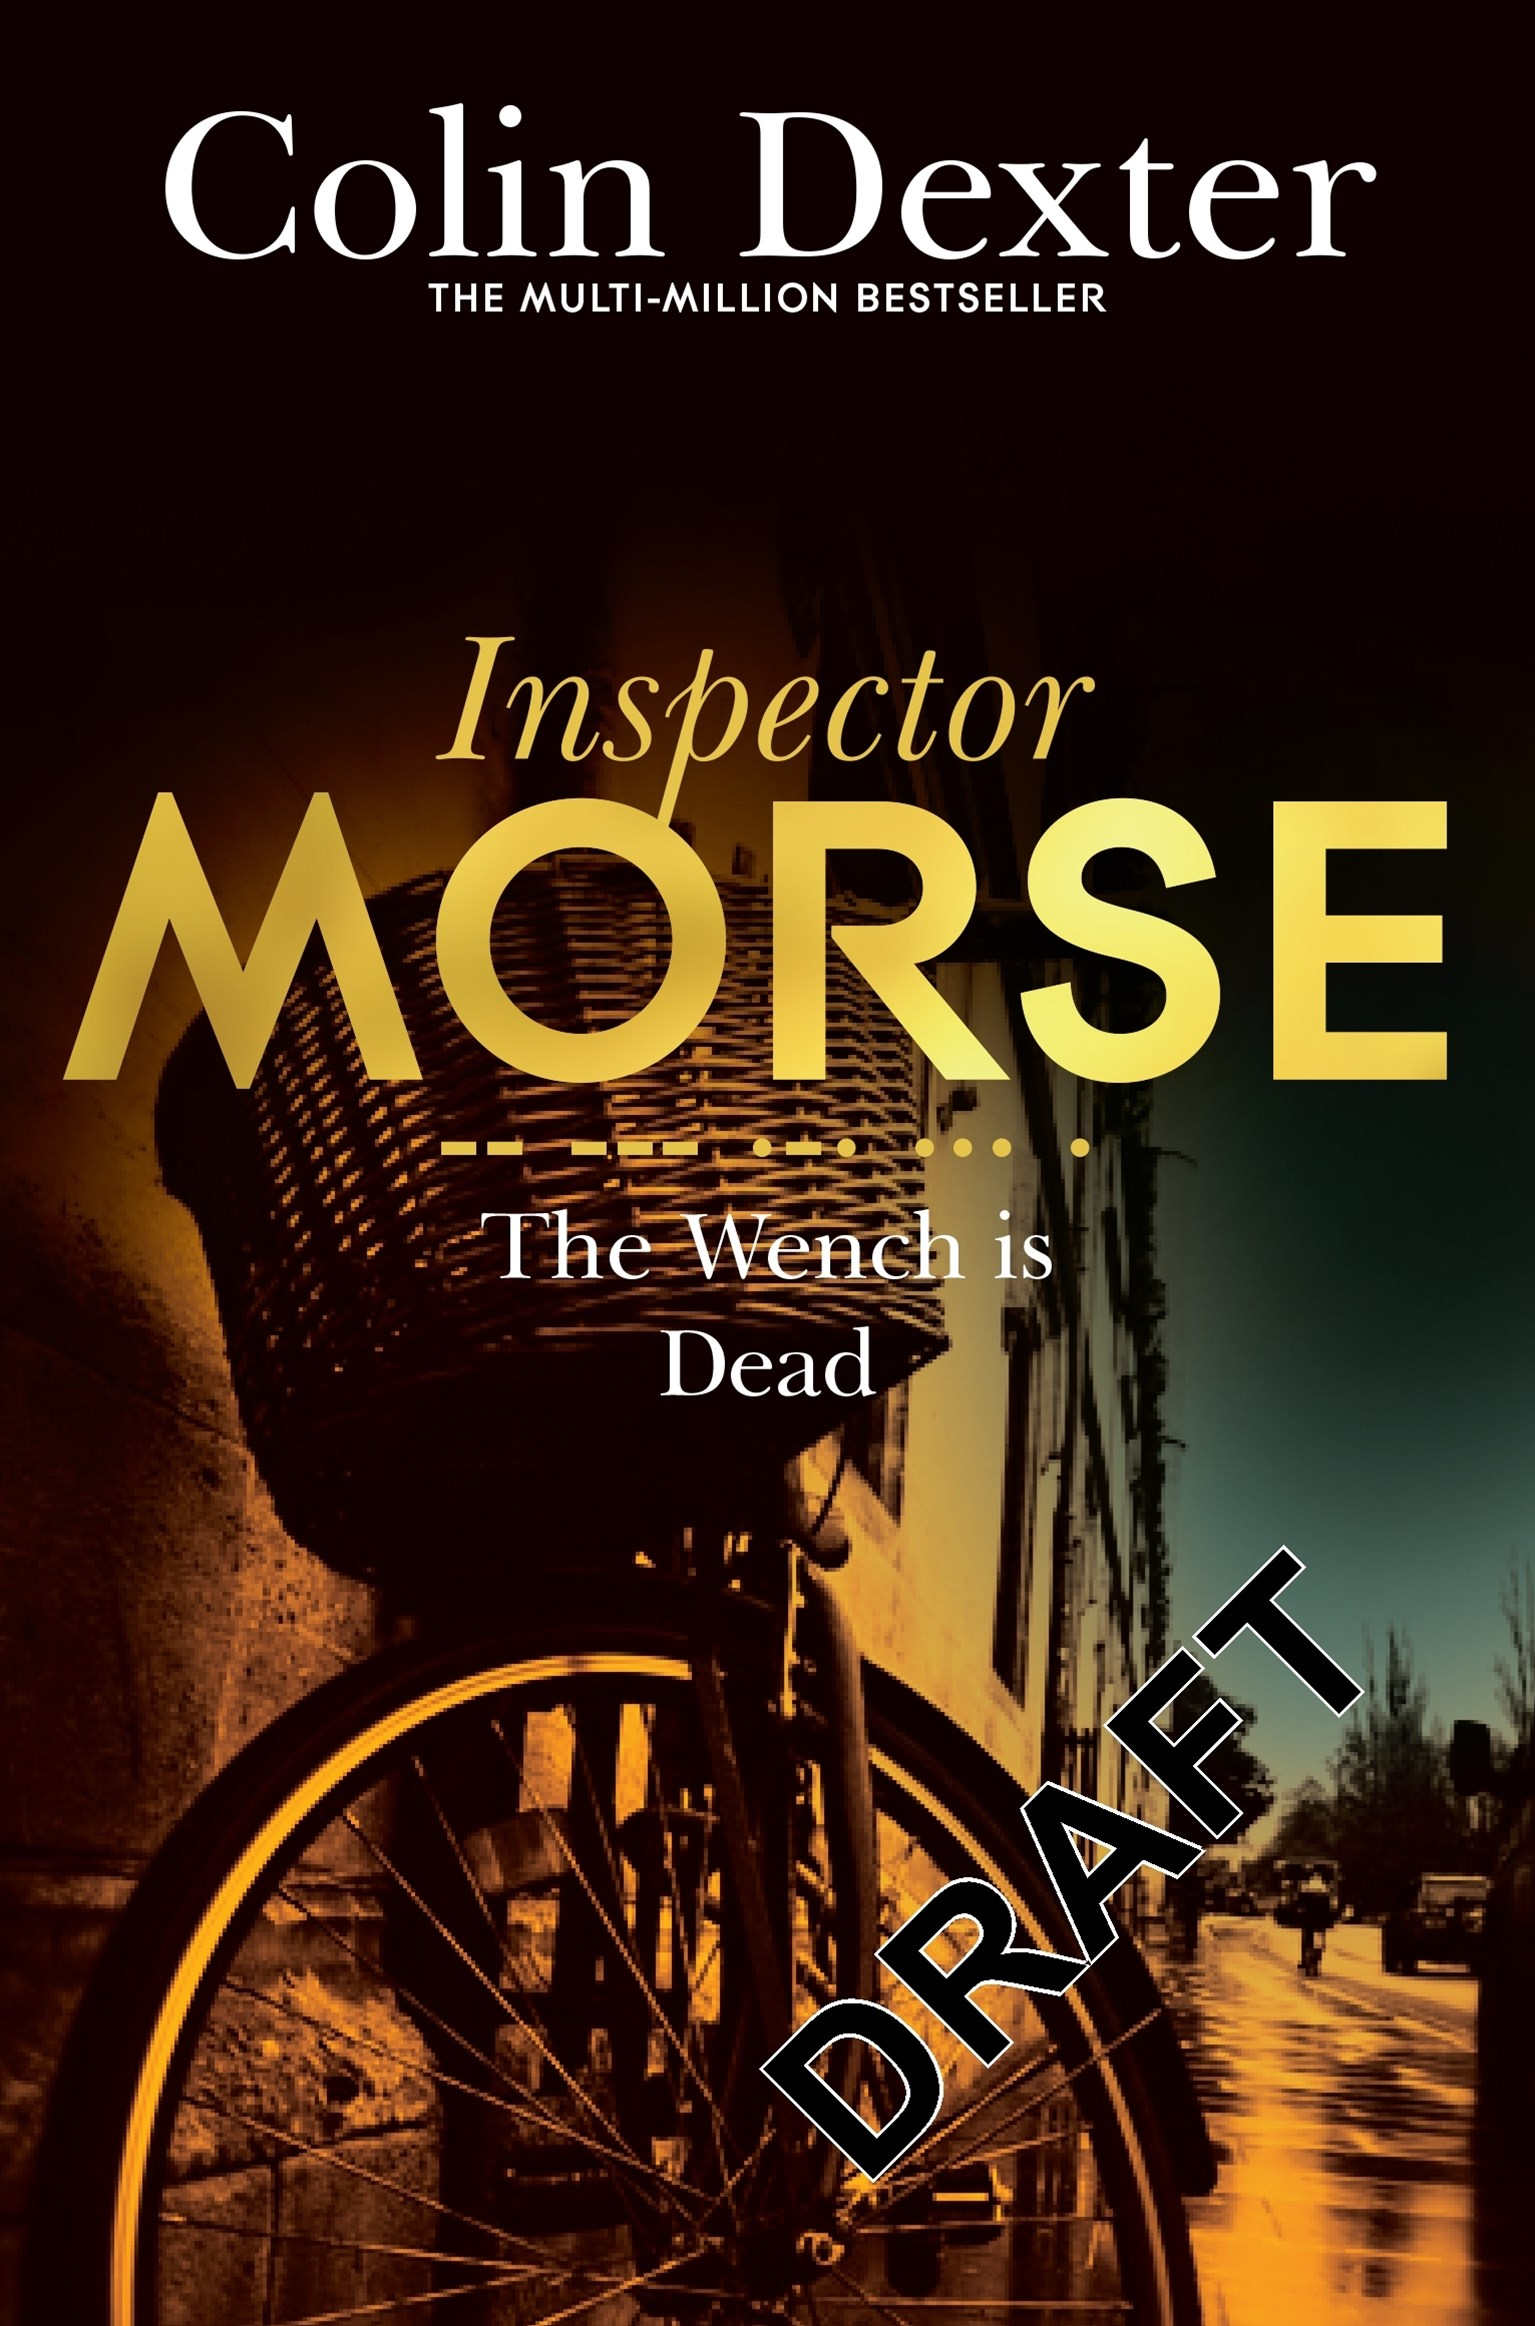 The Wench is Dead: An Inspector Morse Mystery 8